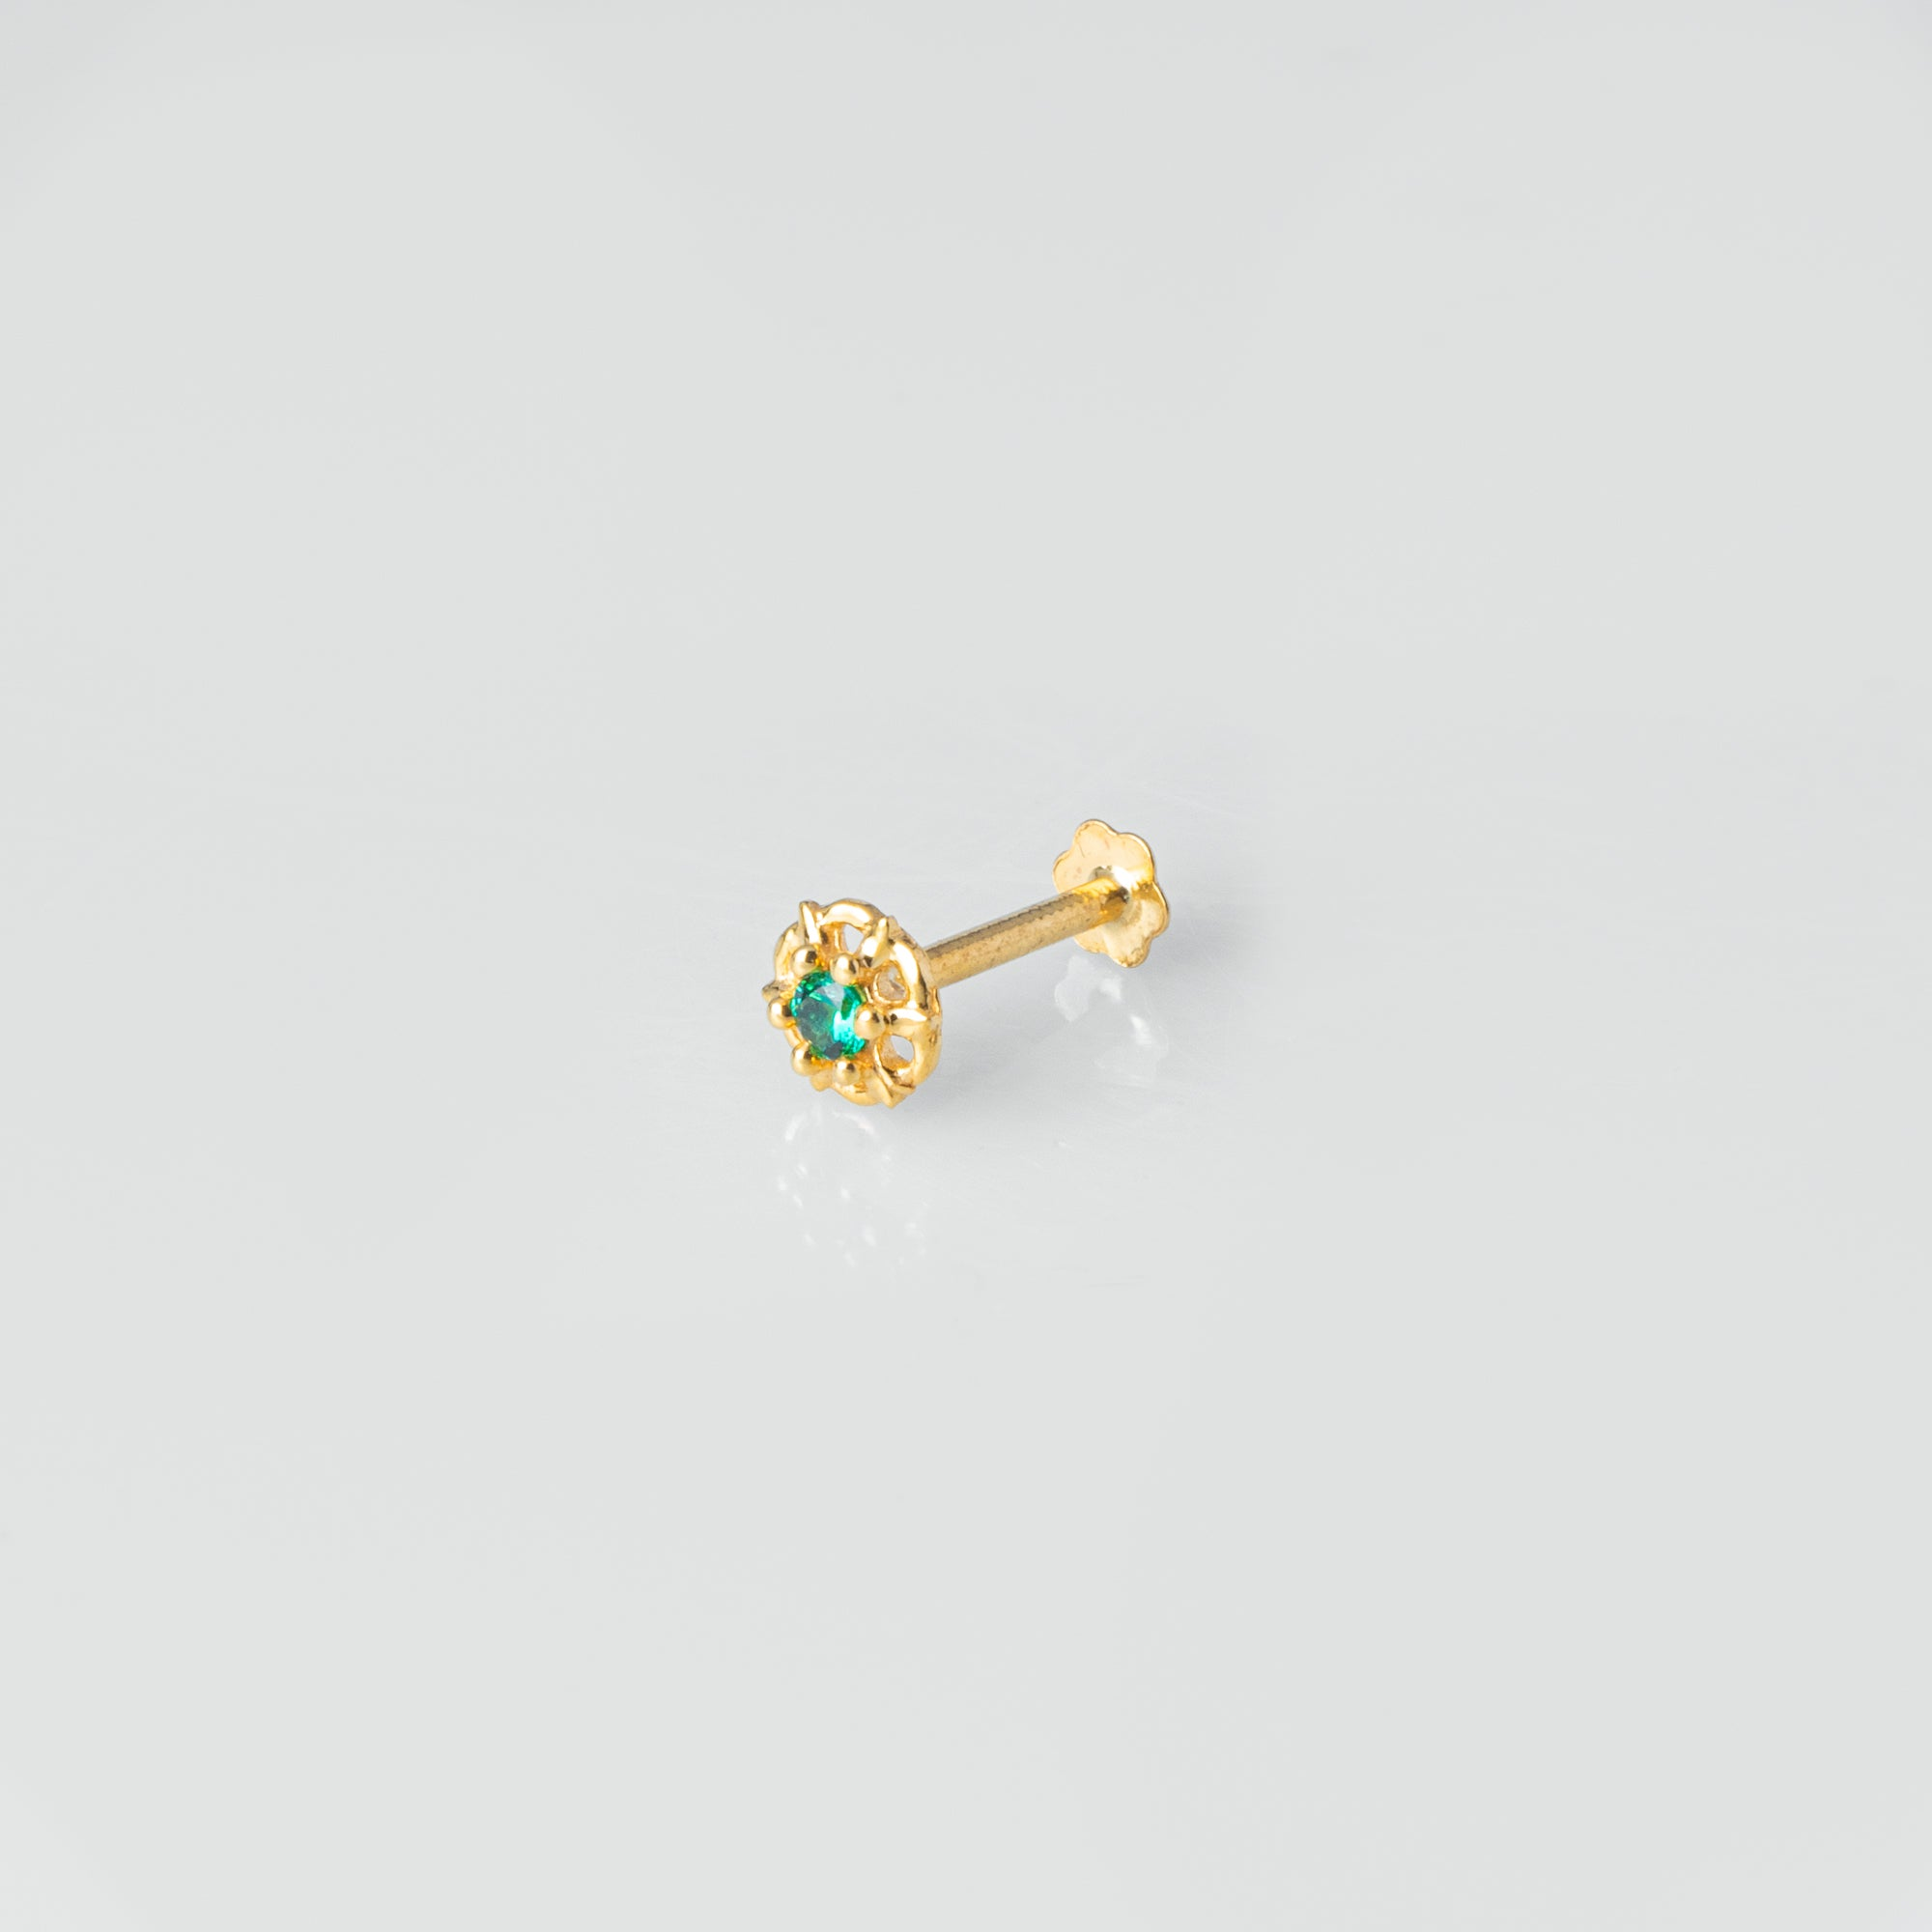 18ct Yellow Gold Nose Stud set with green or blue Cubic Zirconia Stones NS-4791